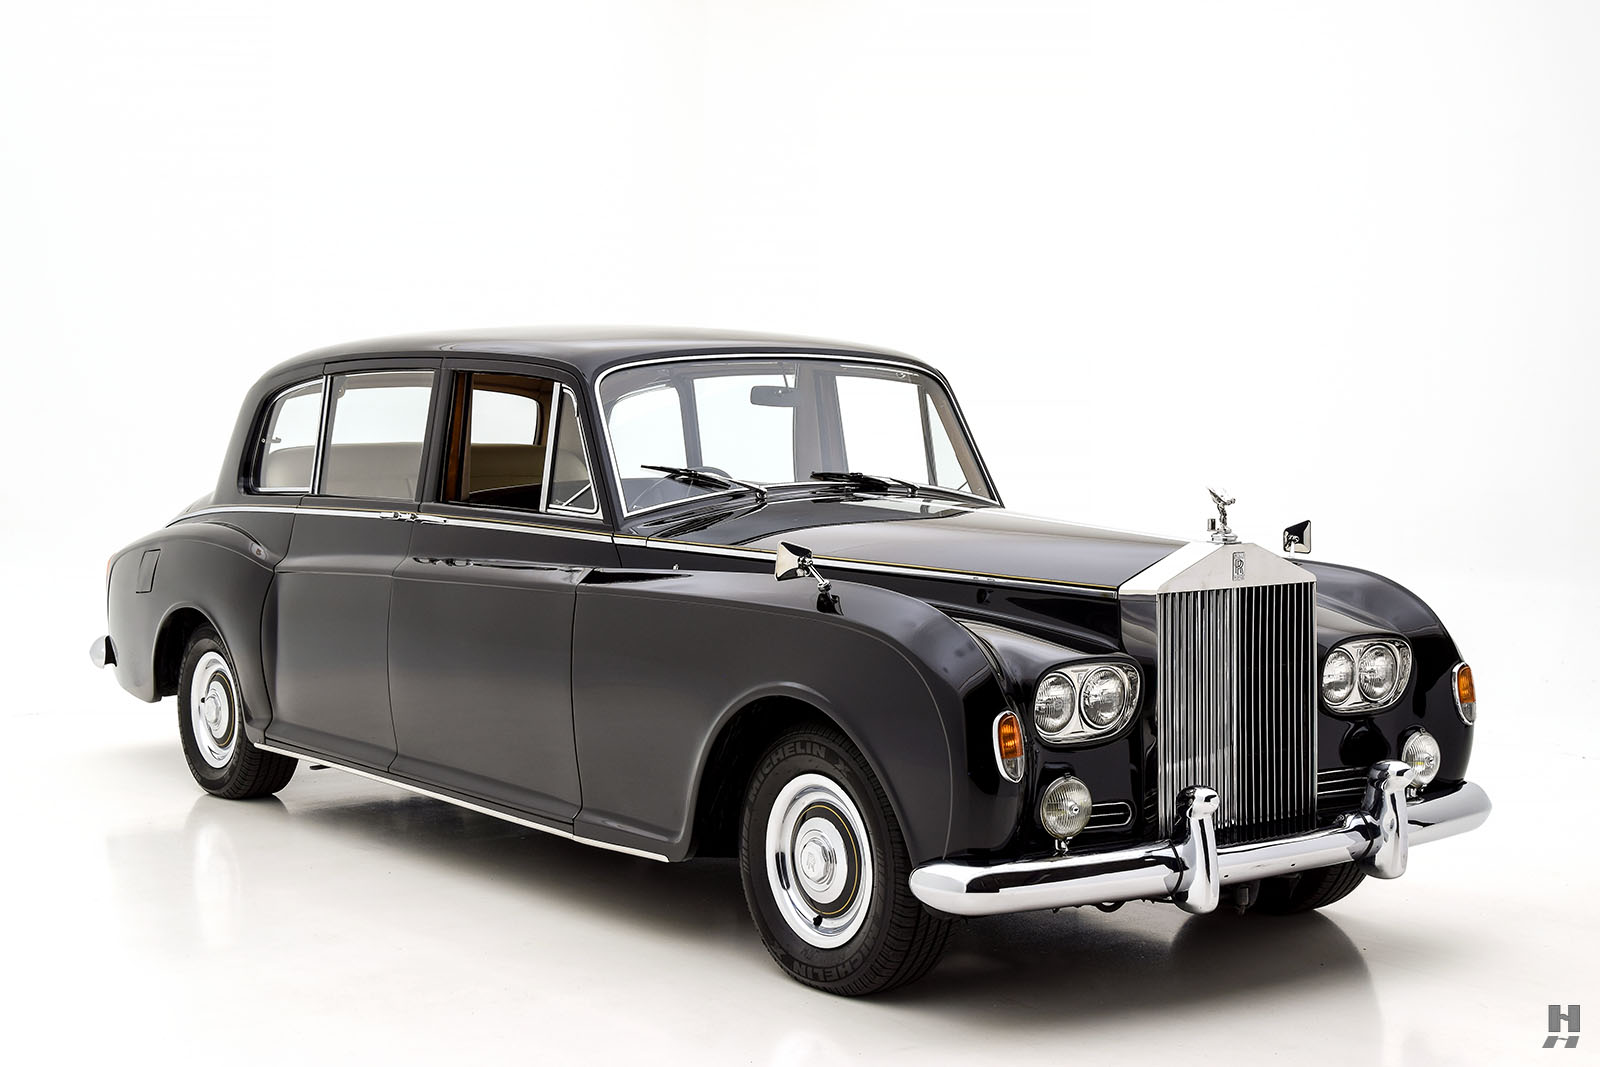 1960 rolls royce phantom v by park ward limousine hyman ltd classic cars. Black Bedroom Furniture Sets. Home Design Ideas